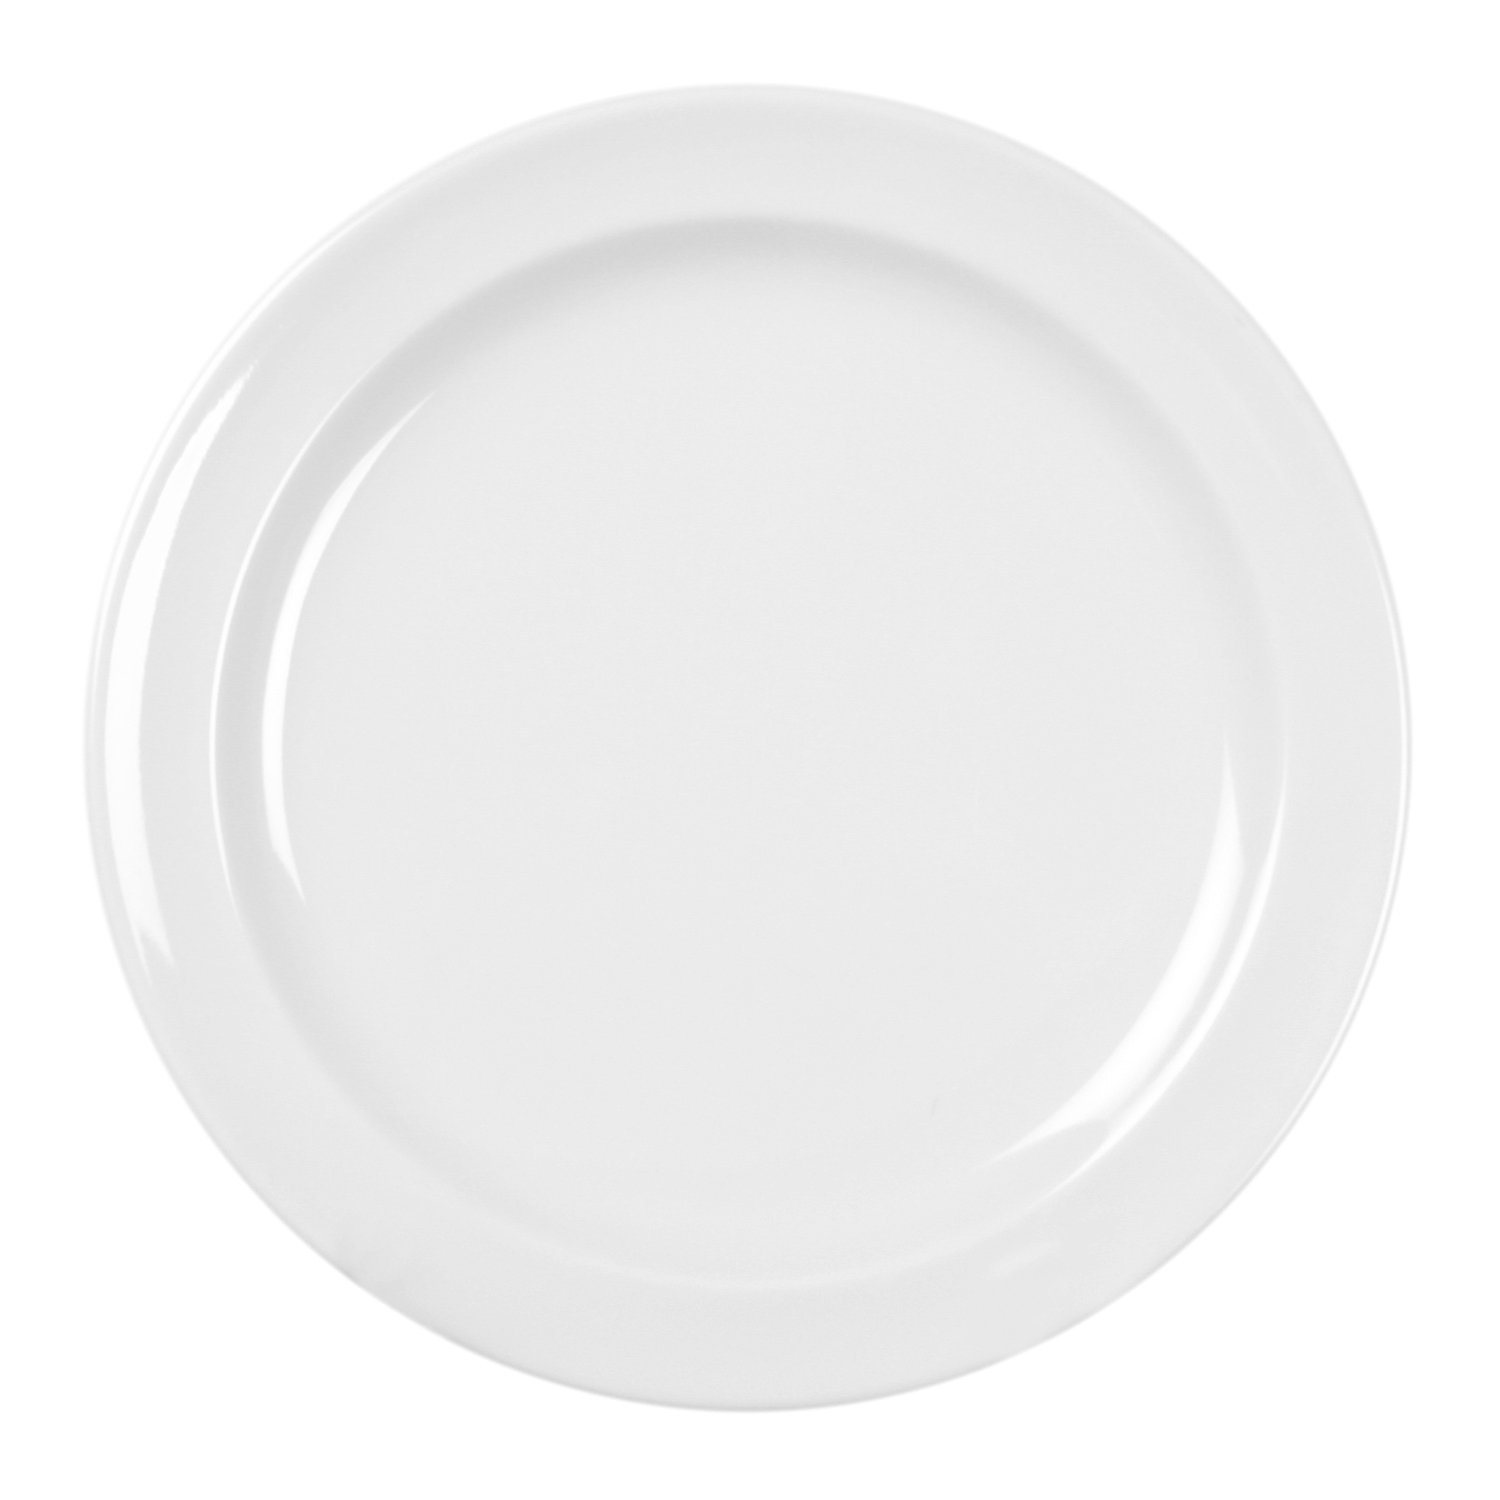 Excellanté Milan Melamine White Collection 7-1/4-Inch Round Dessert Plate, White, 12-Piece